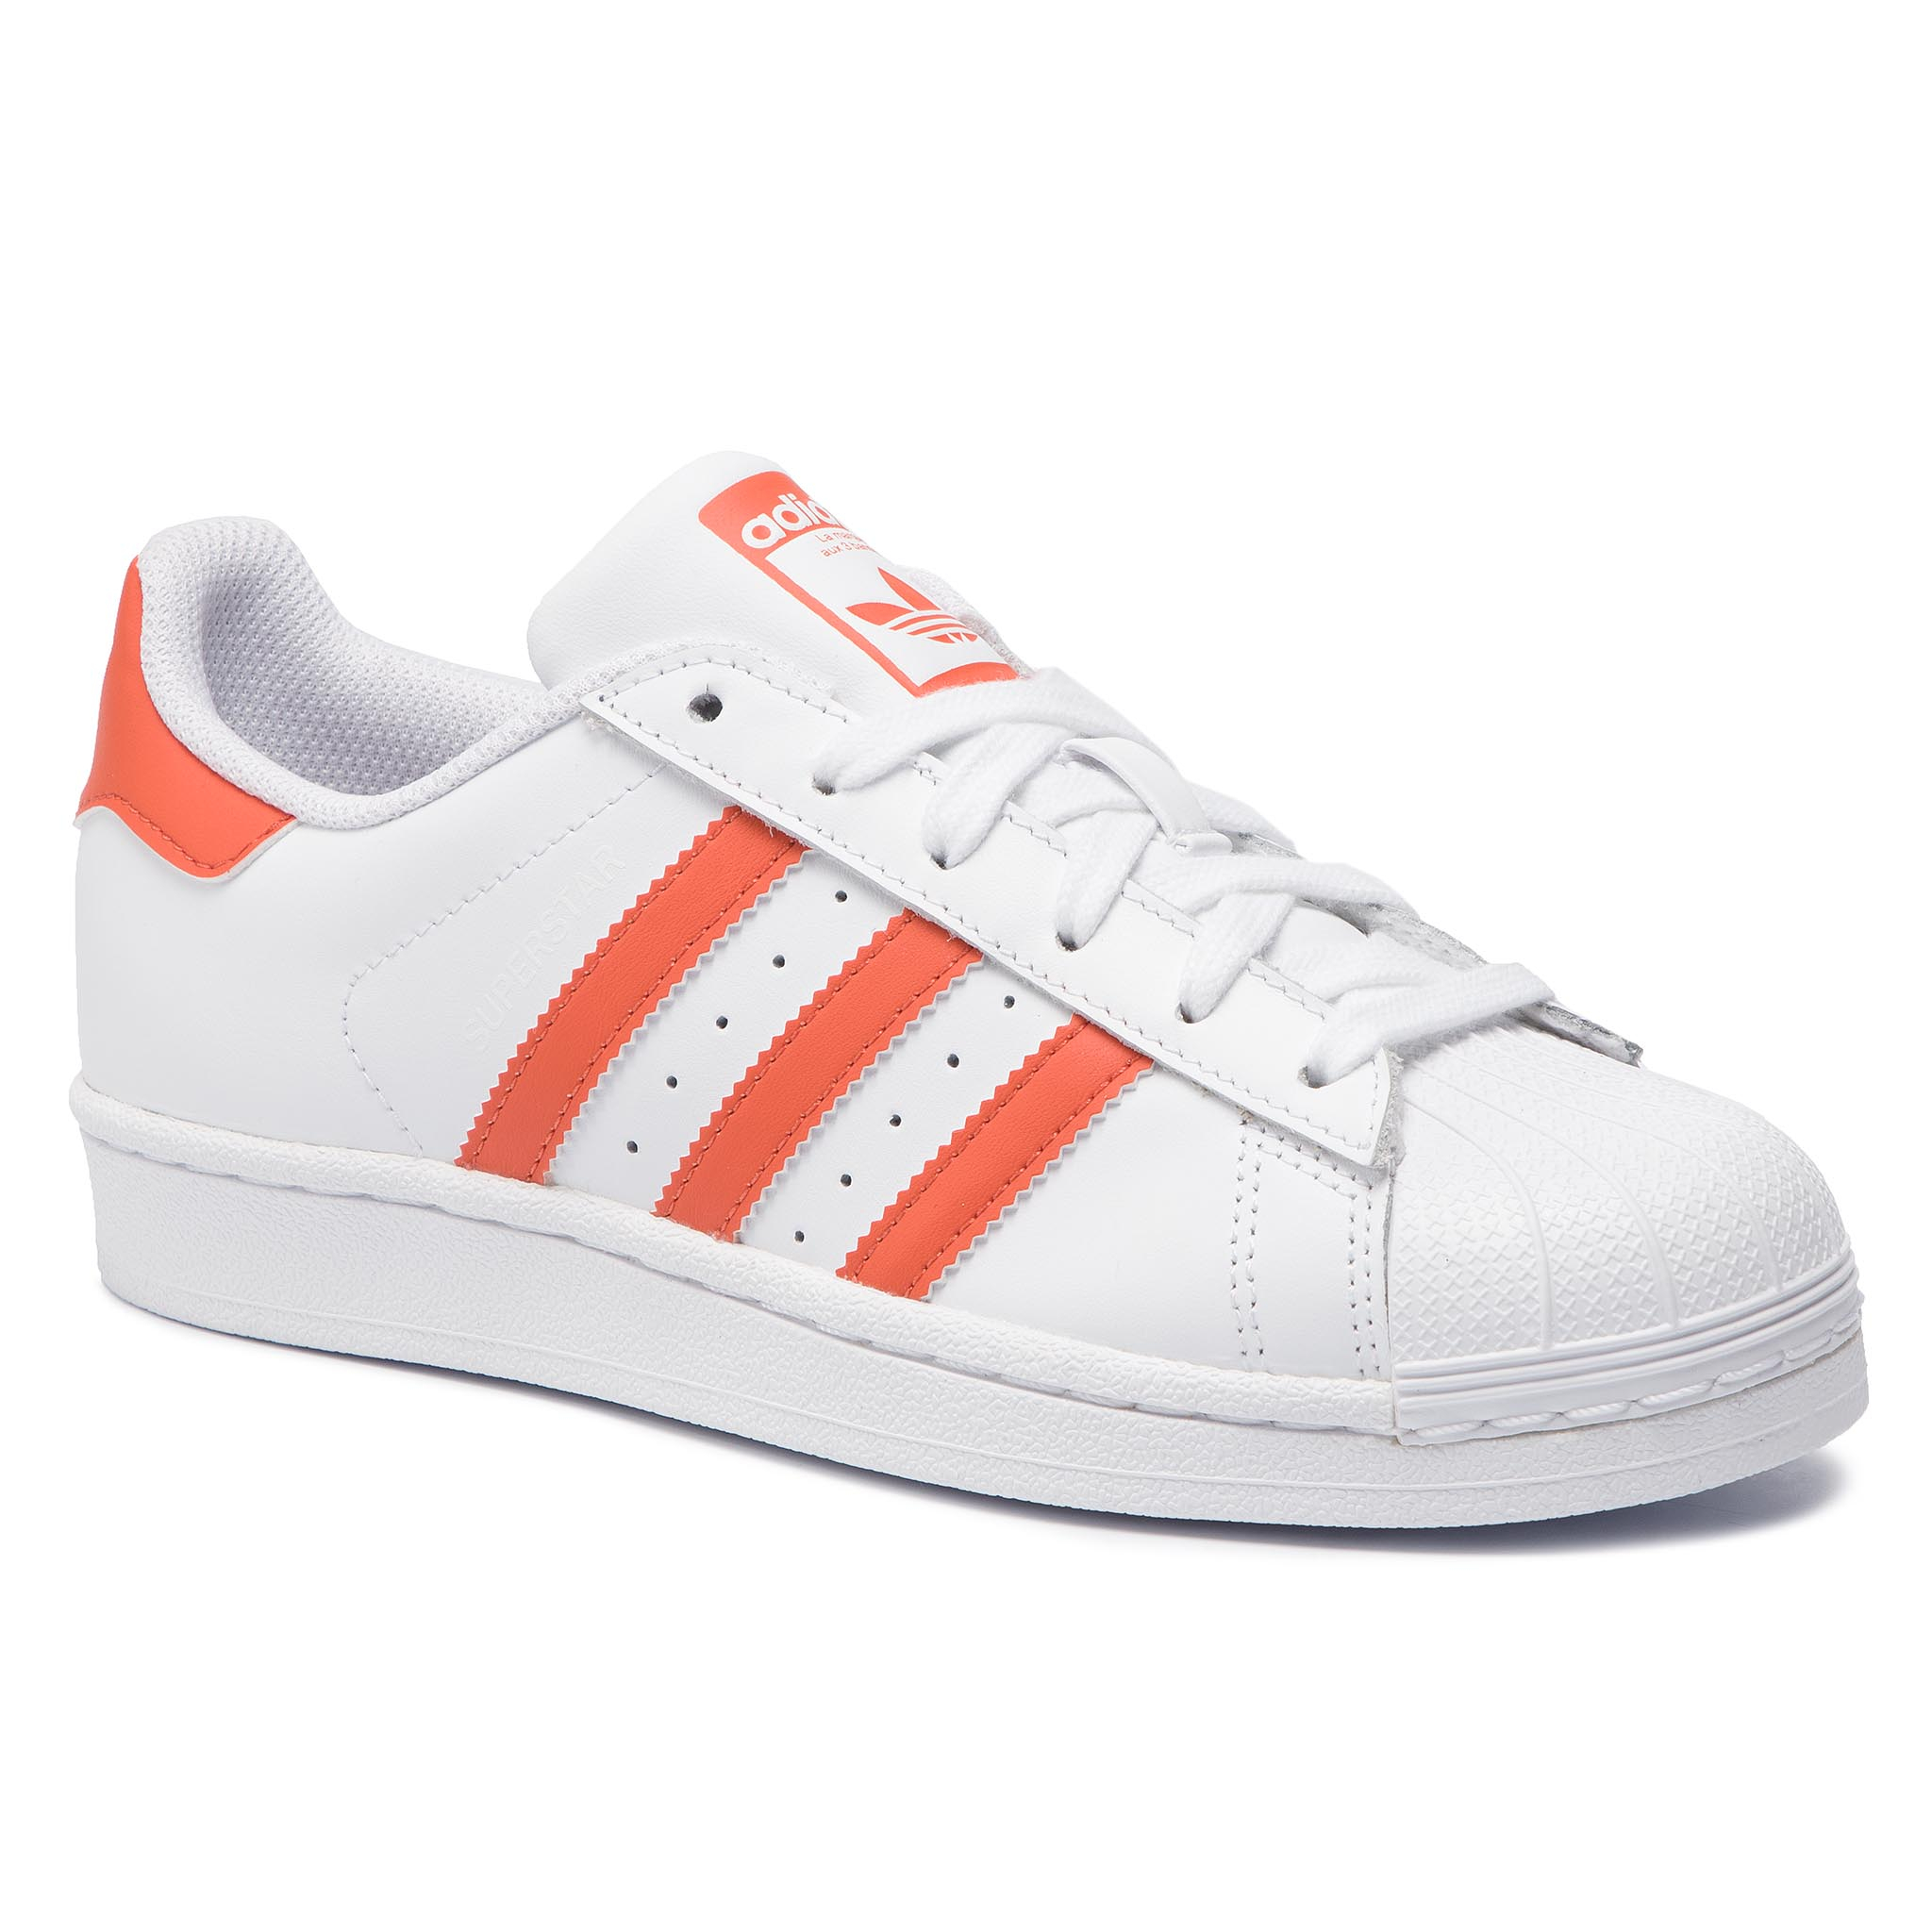 reputable site 5ce91 2b370 Shoes adidas Superstar G27807 Ftwwht Rawamb Ftwwht